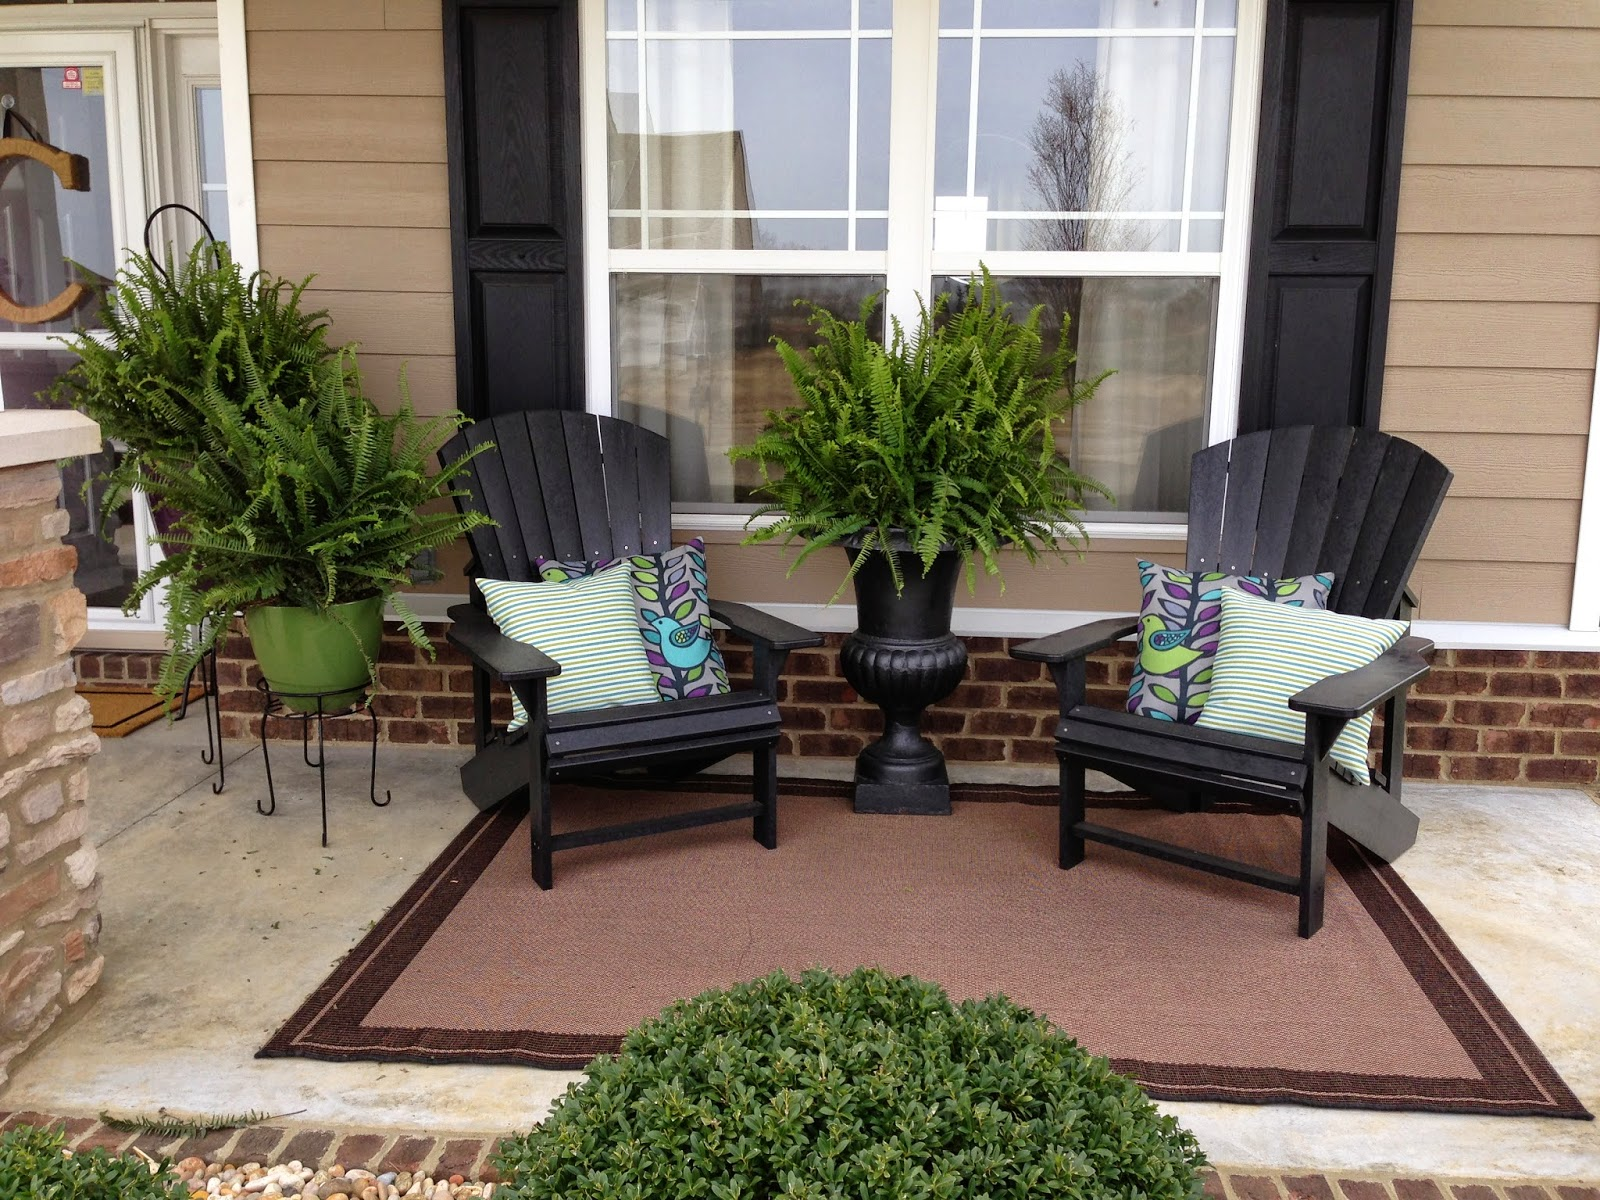 7 front porch decorating ideas pictures for your home for Small outdoor porch ideas